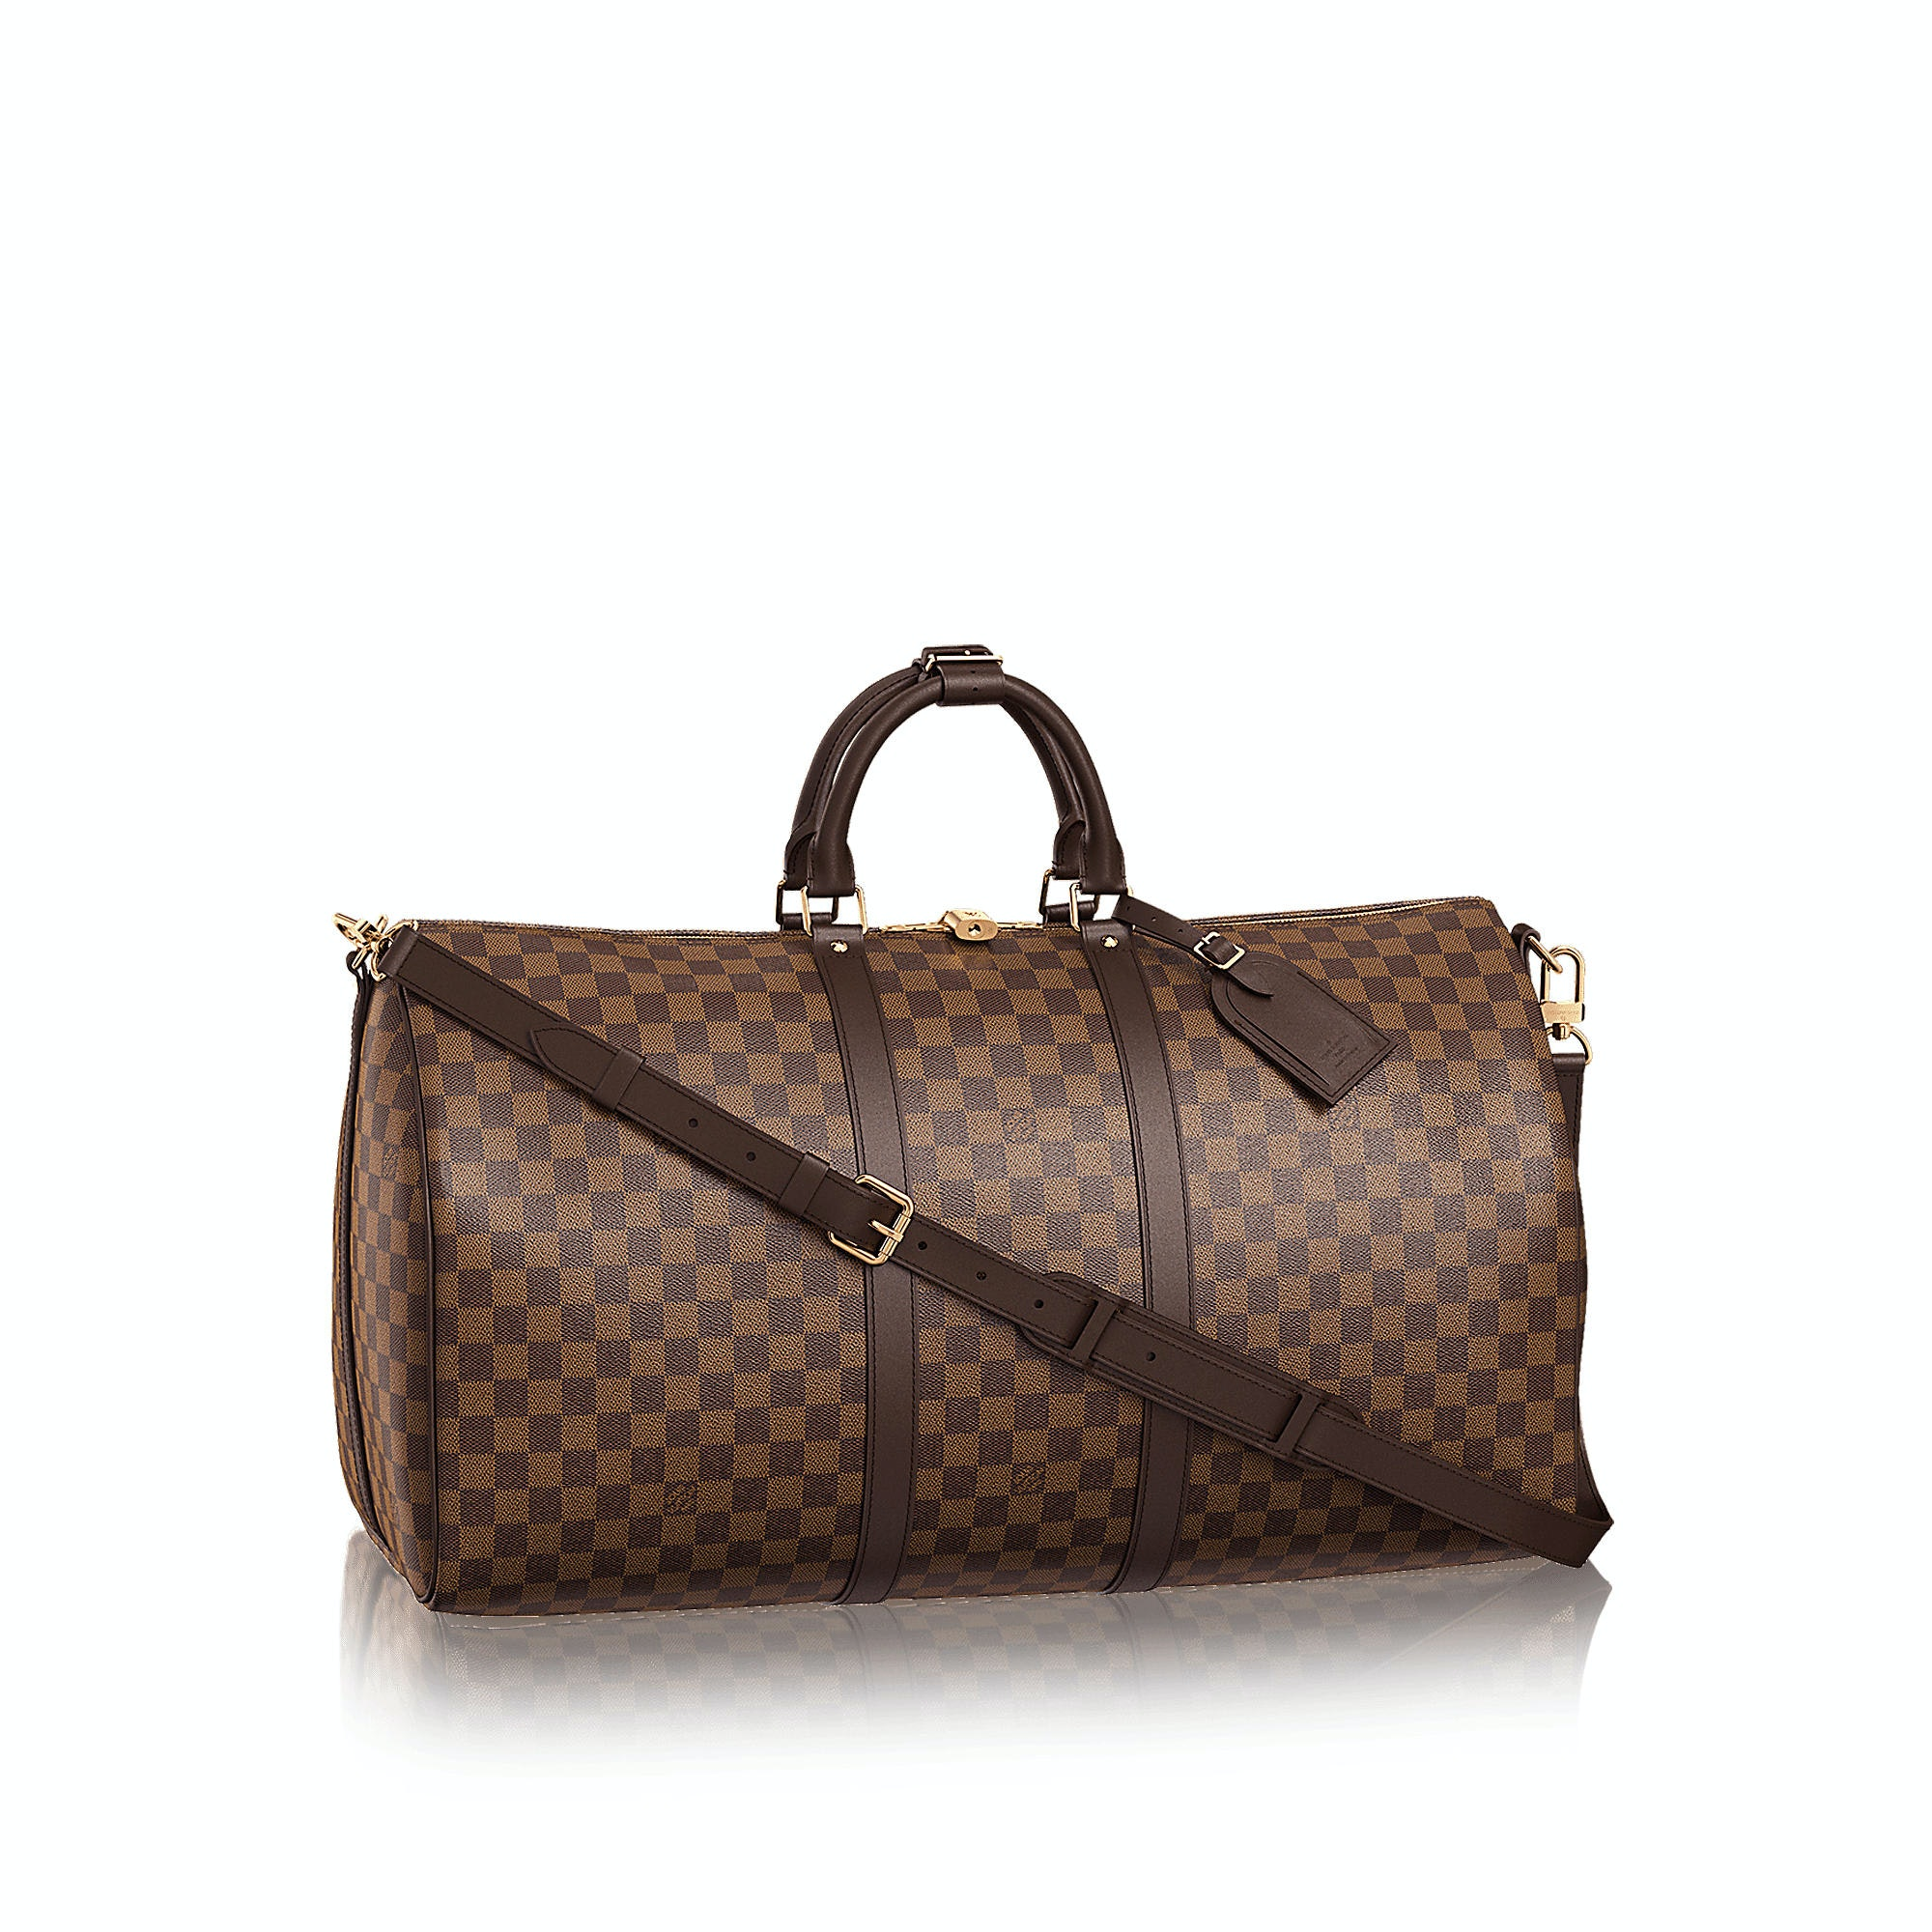 Louis Vuitton Keepall Bandouliere Damier Ebene (With Accessories) 55 Brown